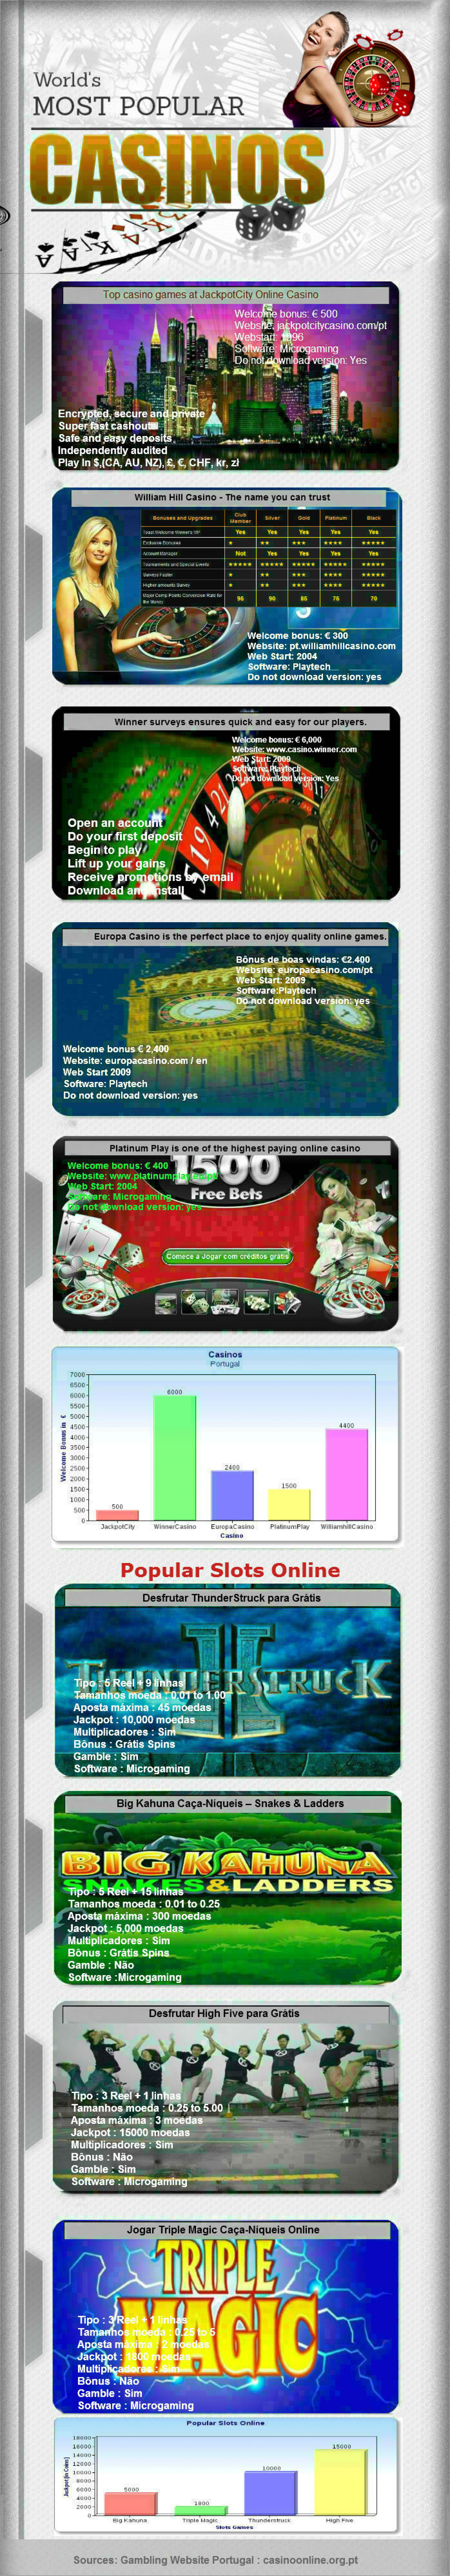 Portugal Online Casinos Infographic